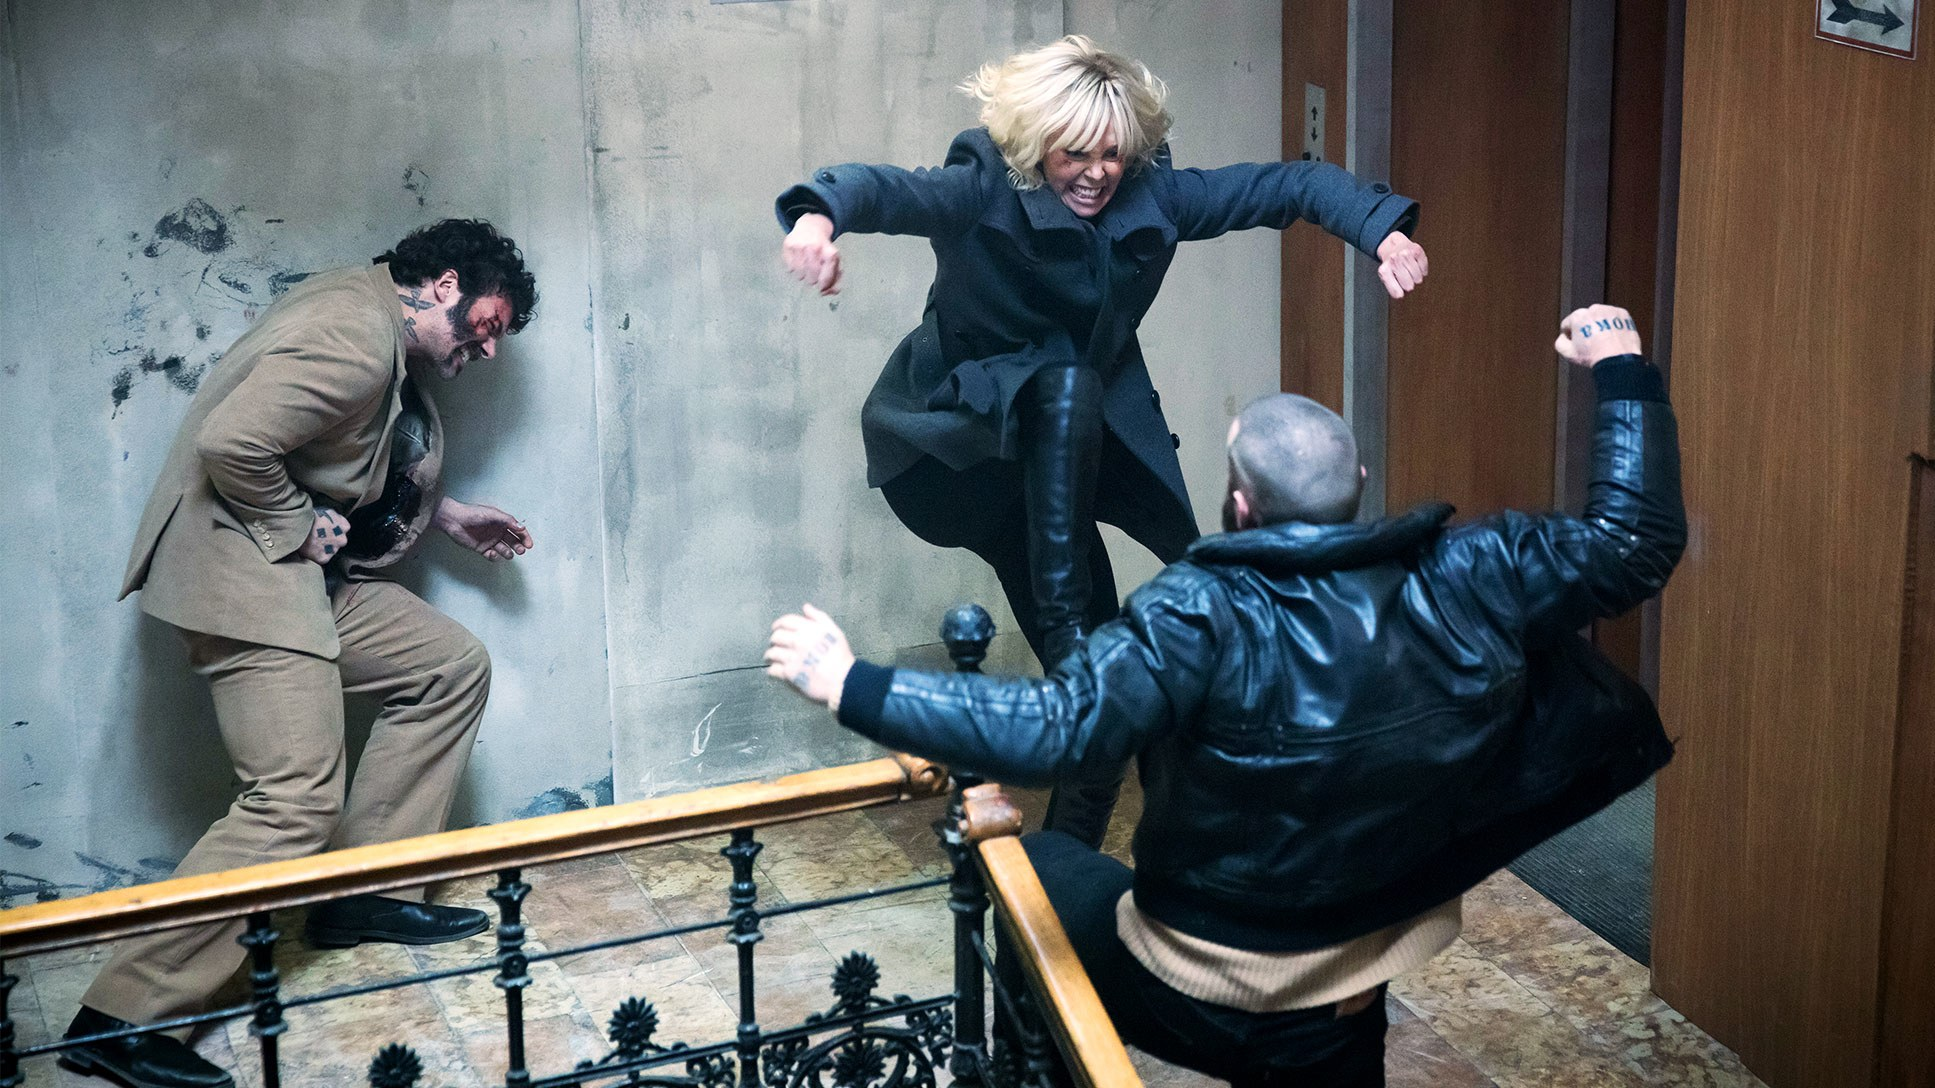 Atomic Blonde apocalypse at the end of the world Berlin Wall David Leitch